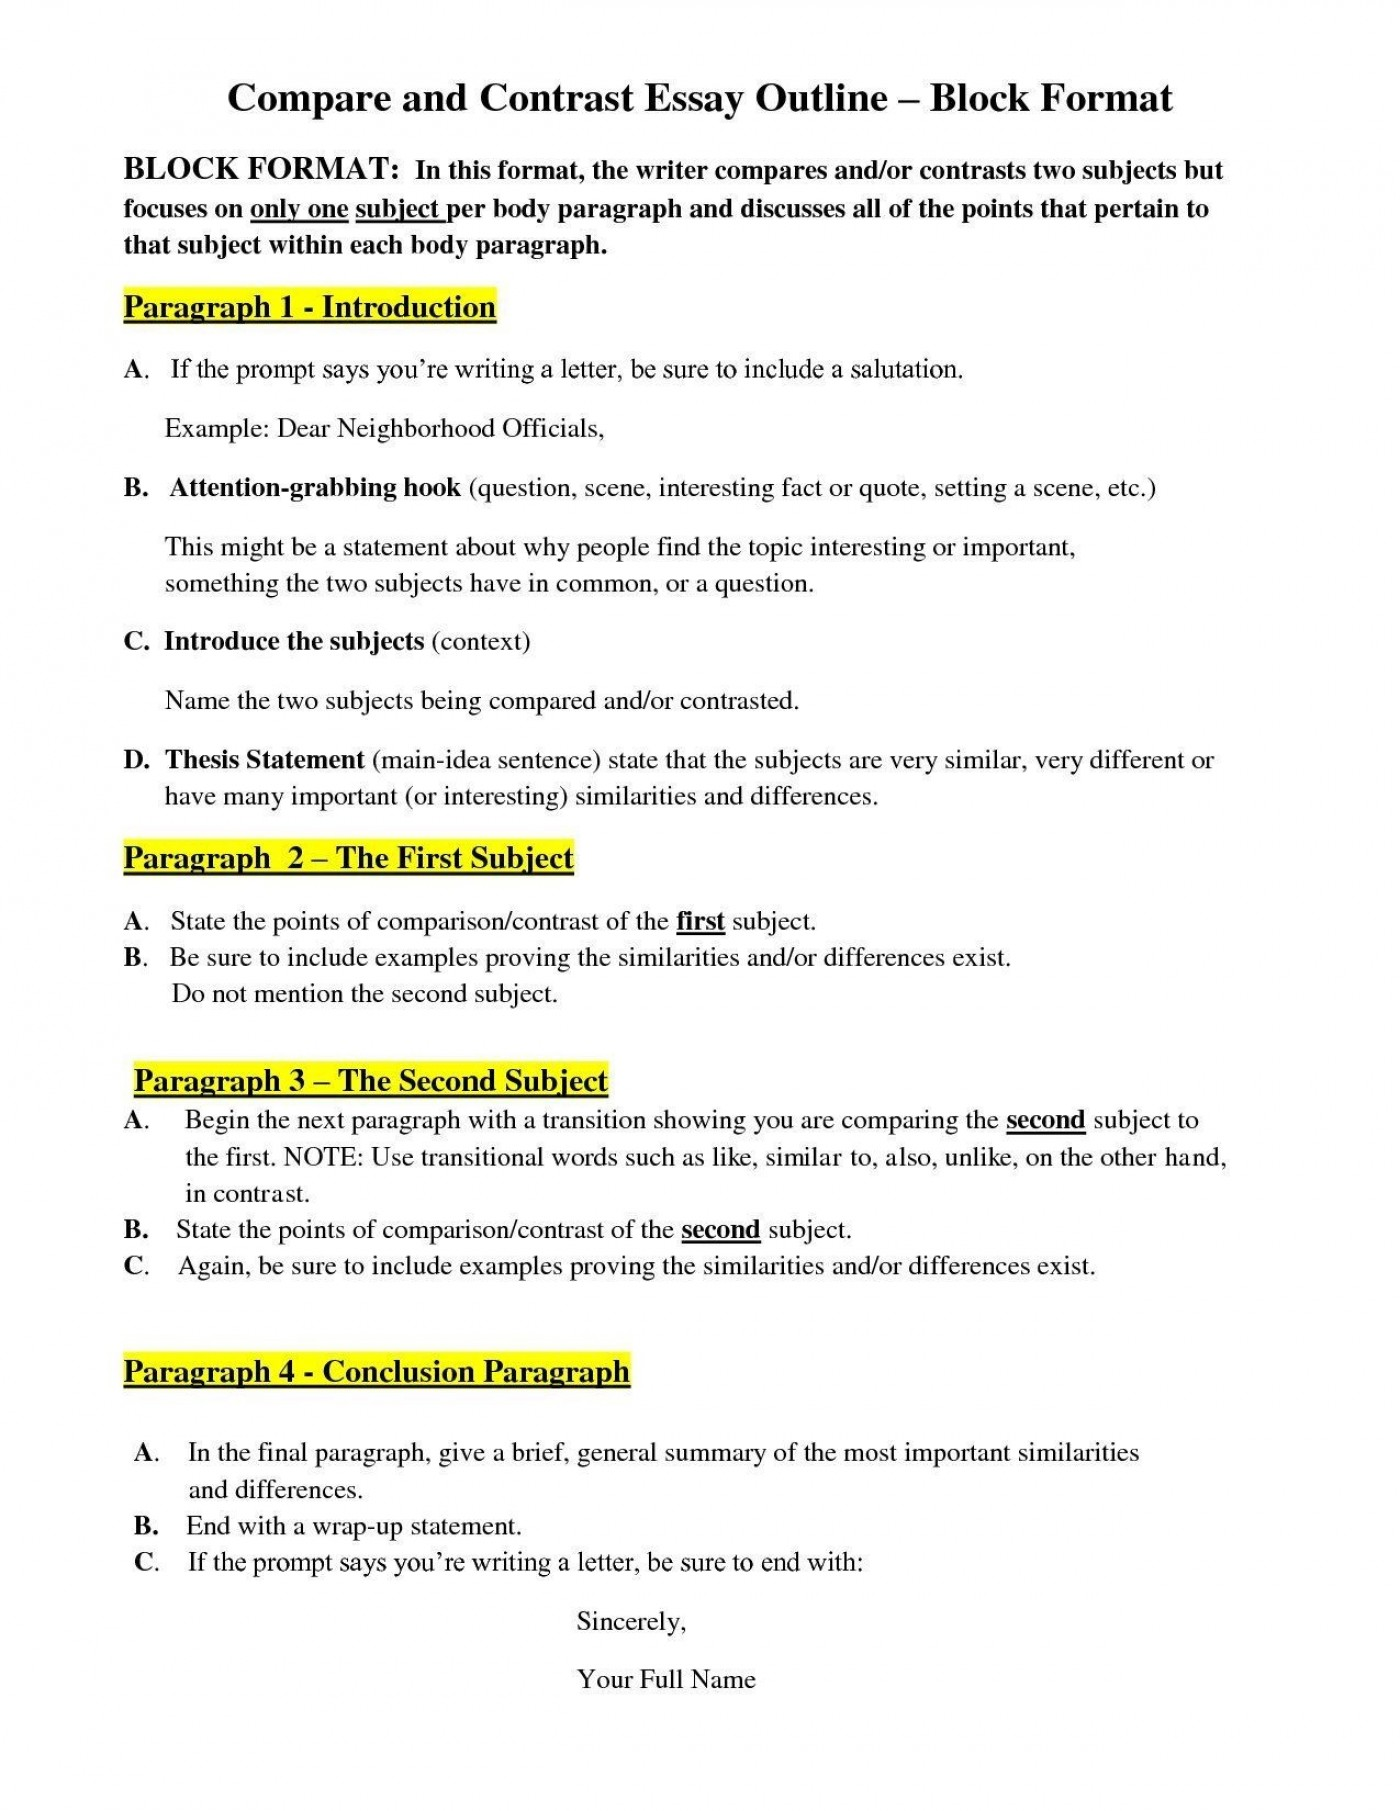 014 Essay Examplempare Andntrastmparison Best Examples Of Scenario In 6th Grade An Goo 3rd Food 5th Middle School Block Format Pdf High 4th Vs Striking Compare And Contrast Example For College Outline 1400